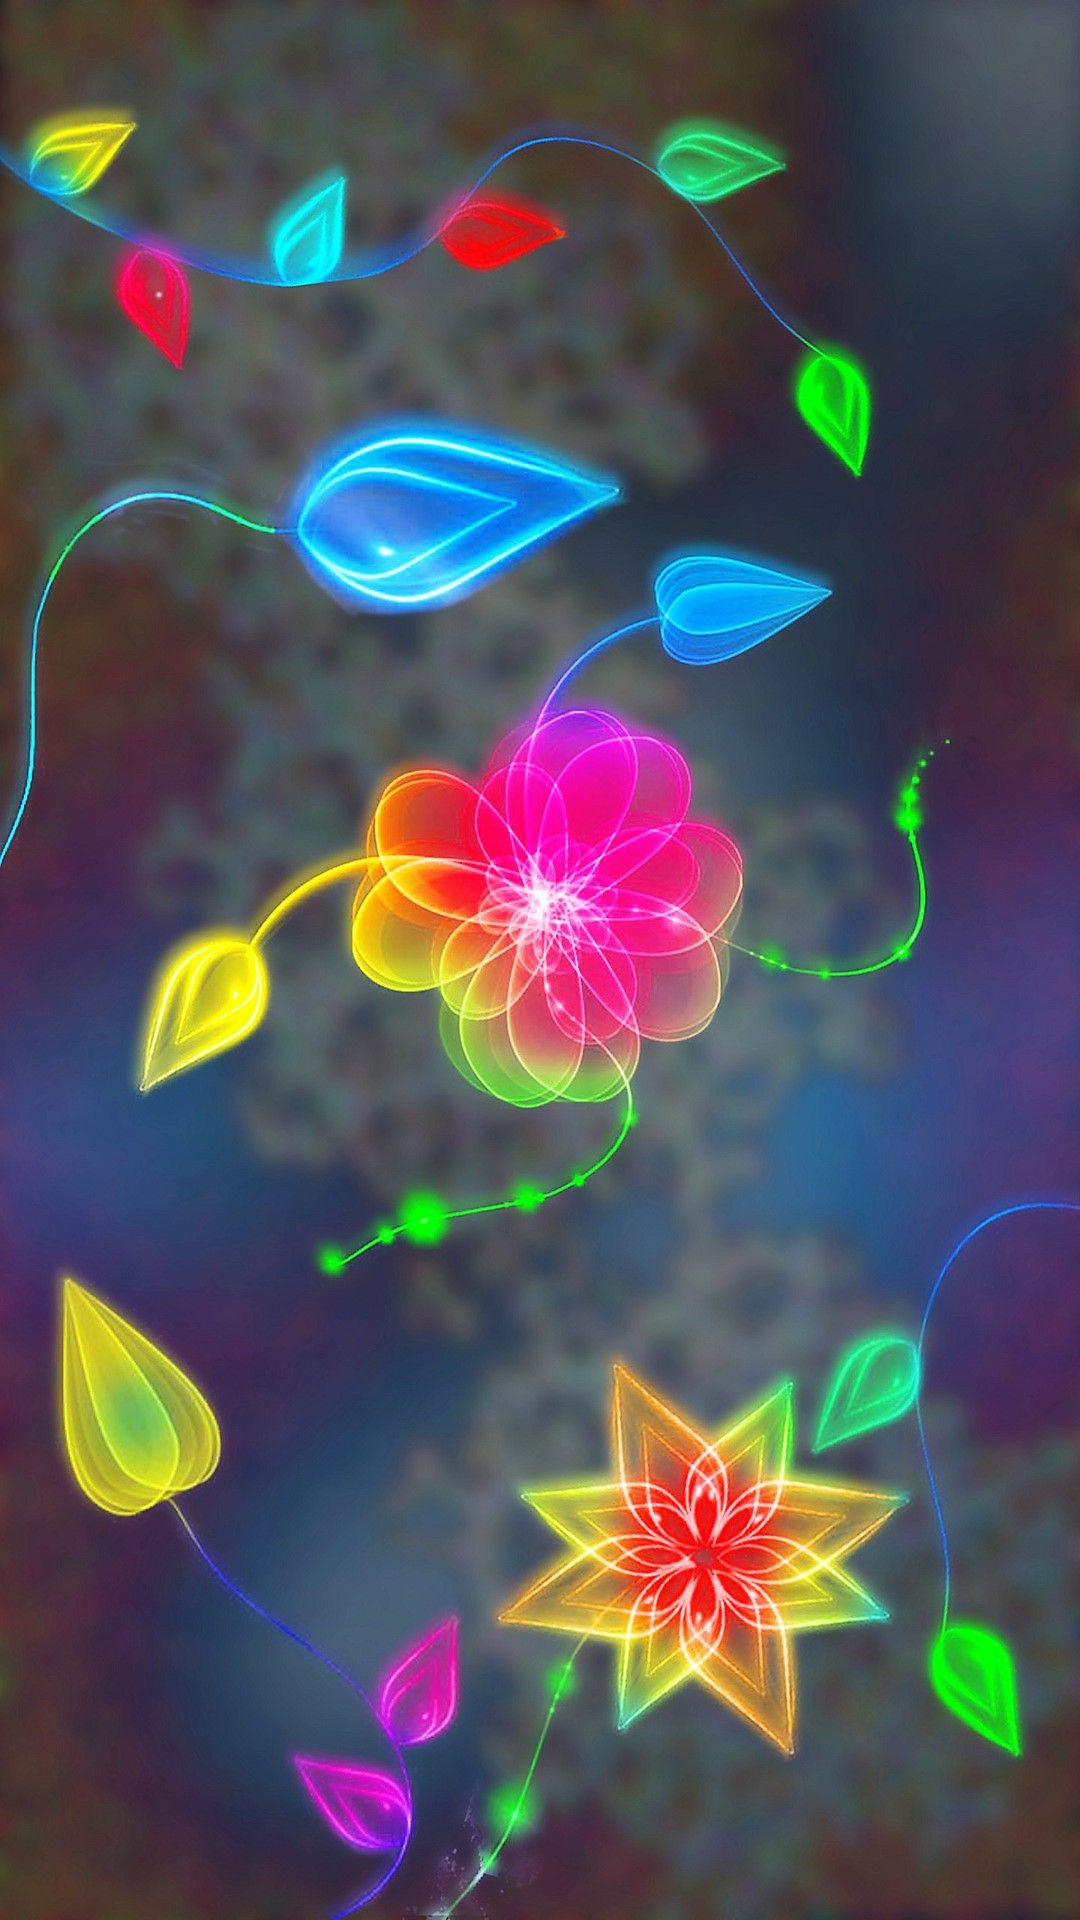 Flowers   Tap to see more flowery colorful patterened abstract 1080x1920